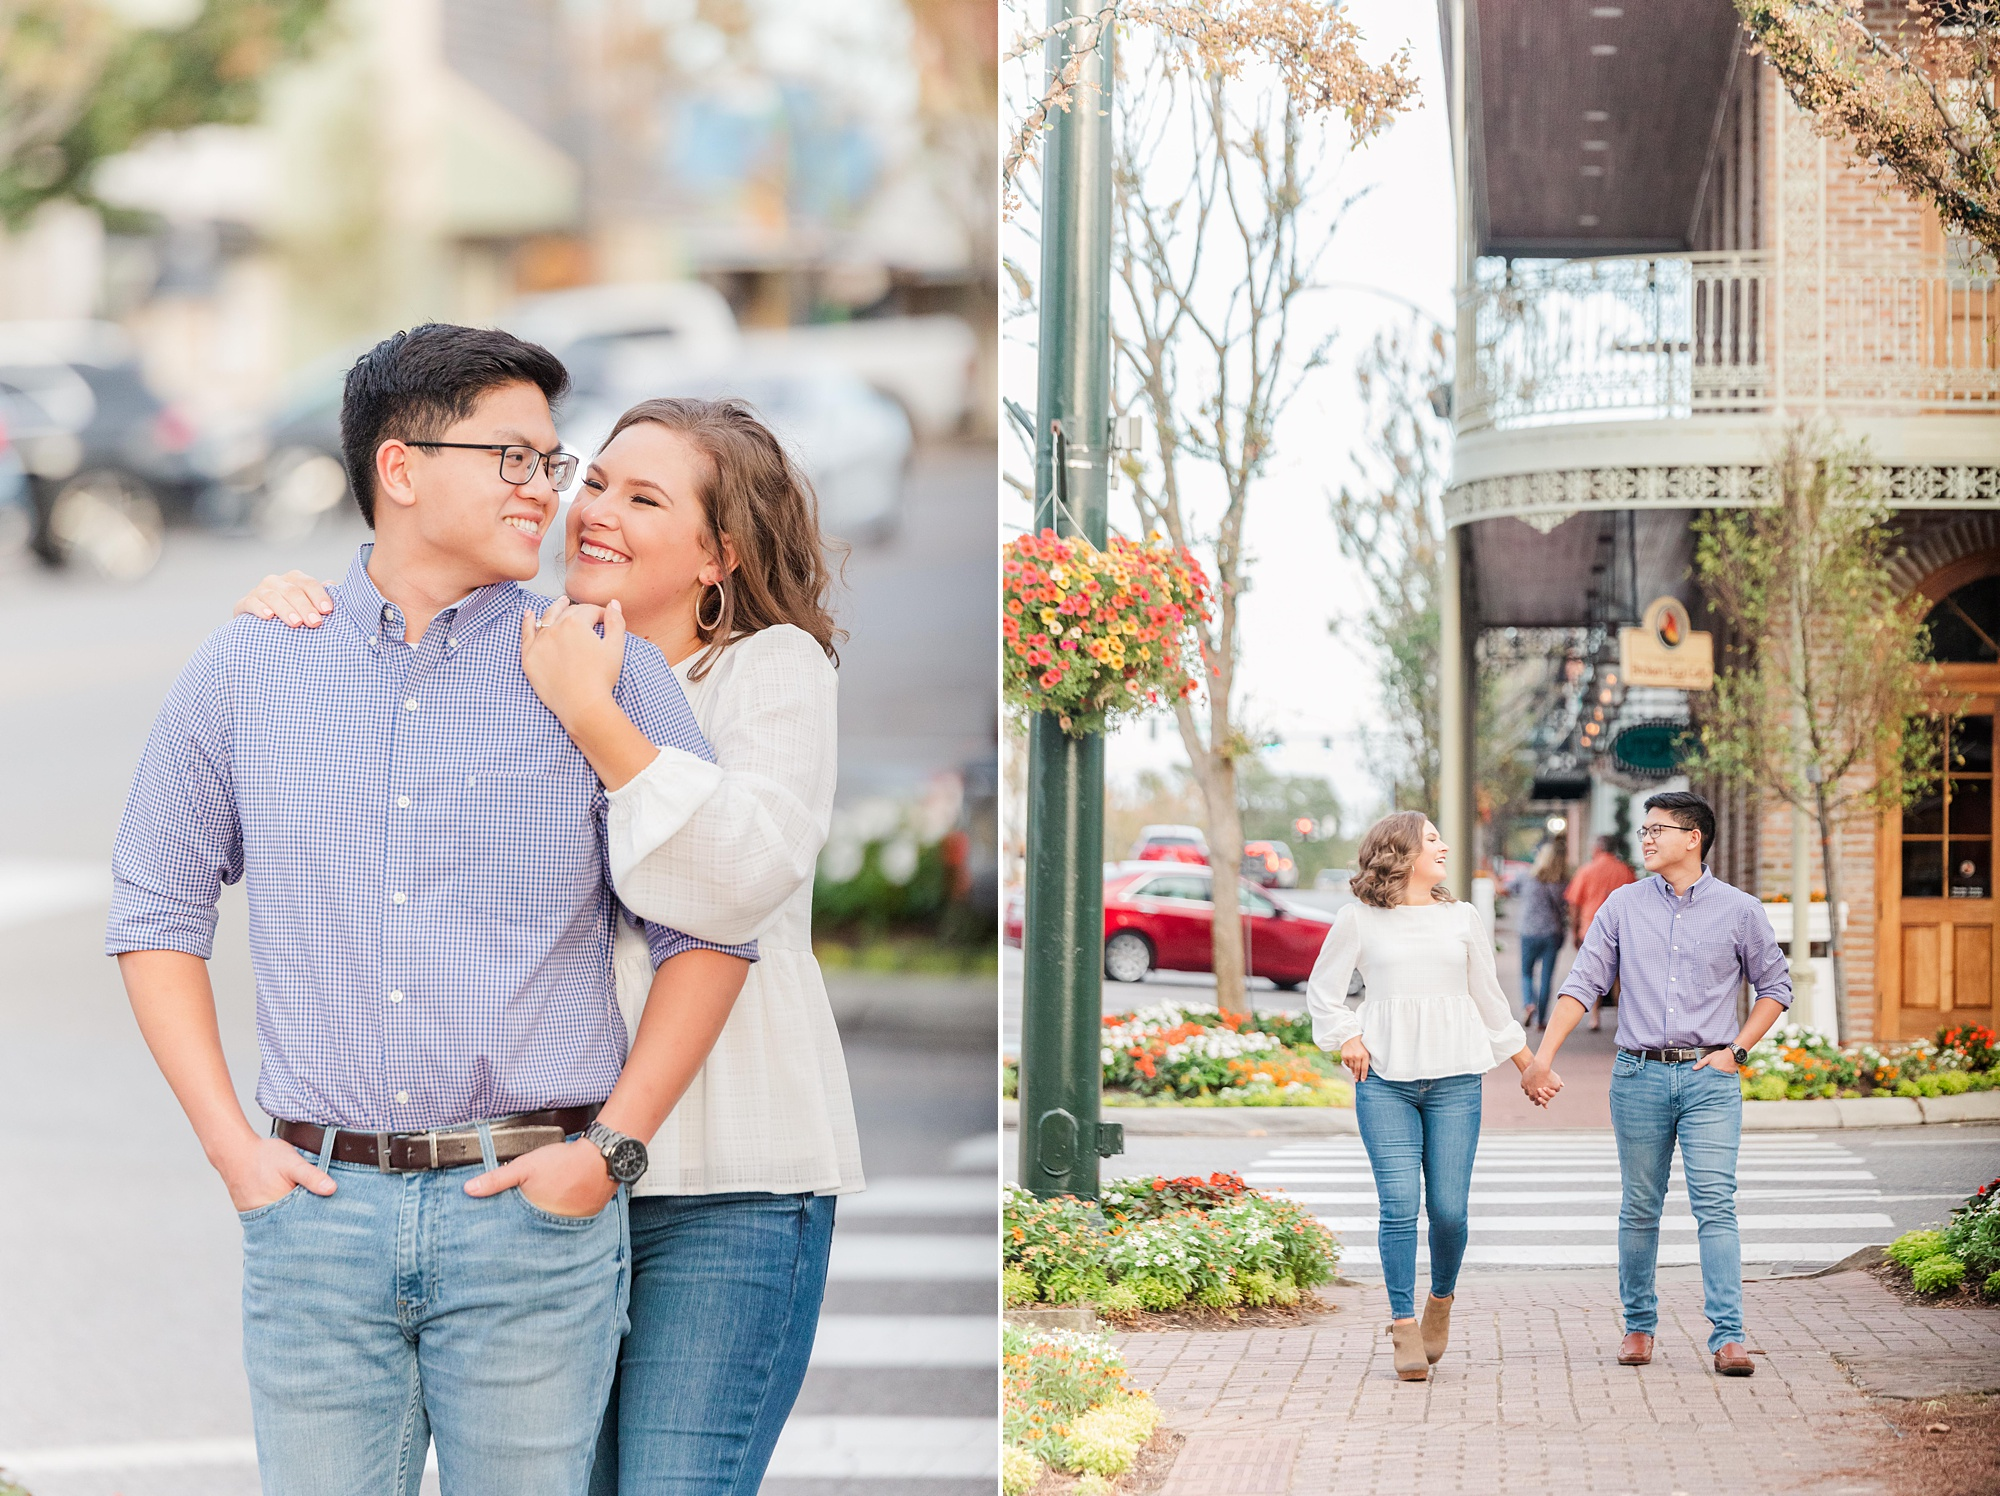 romantic downtown engagement photos in Alabama